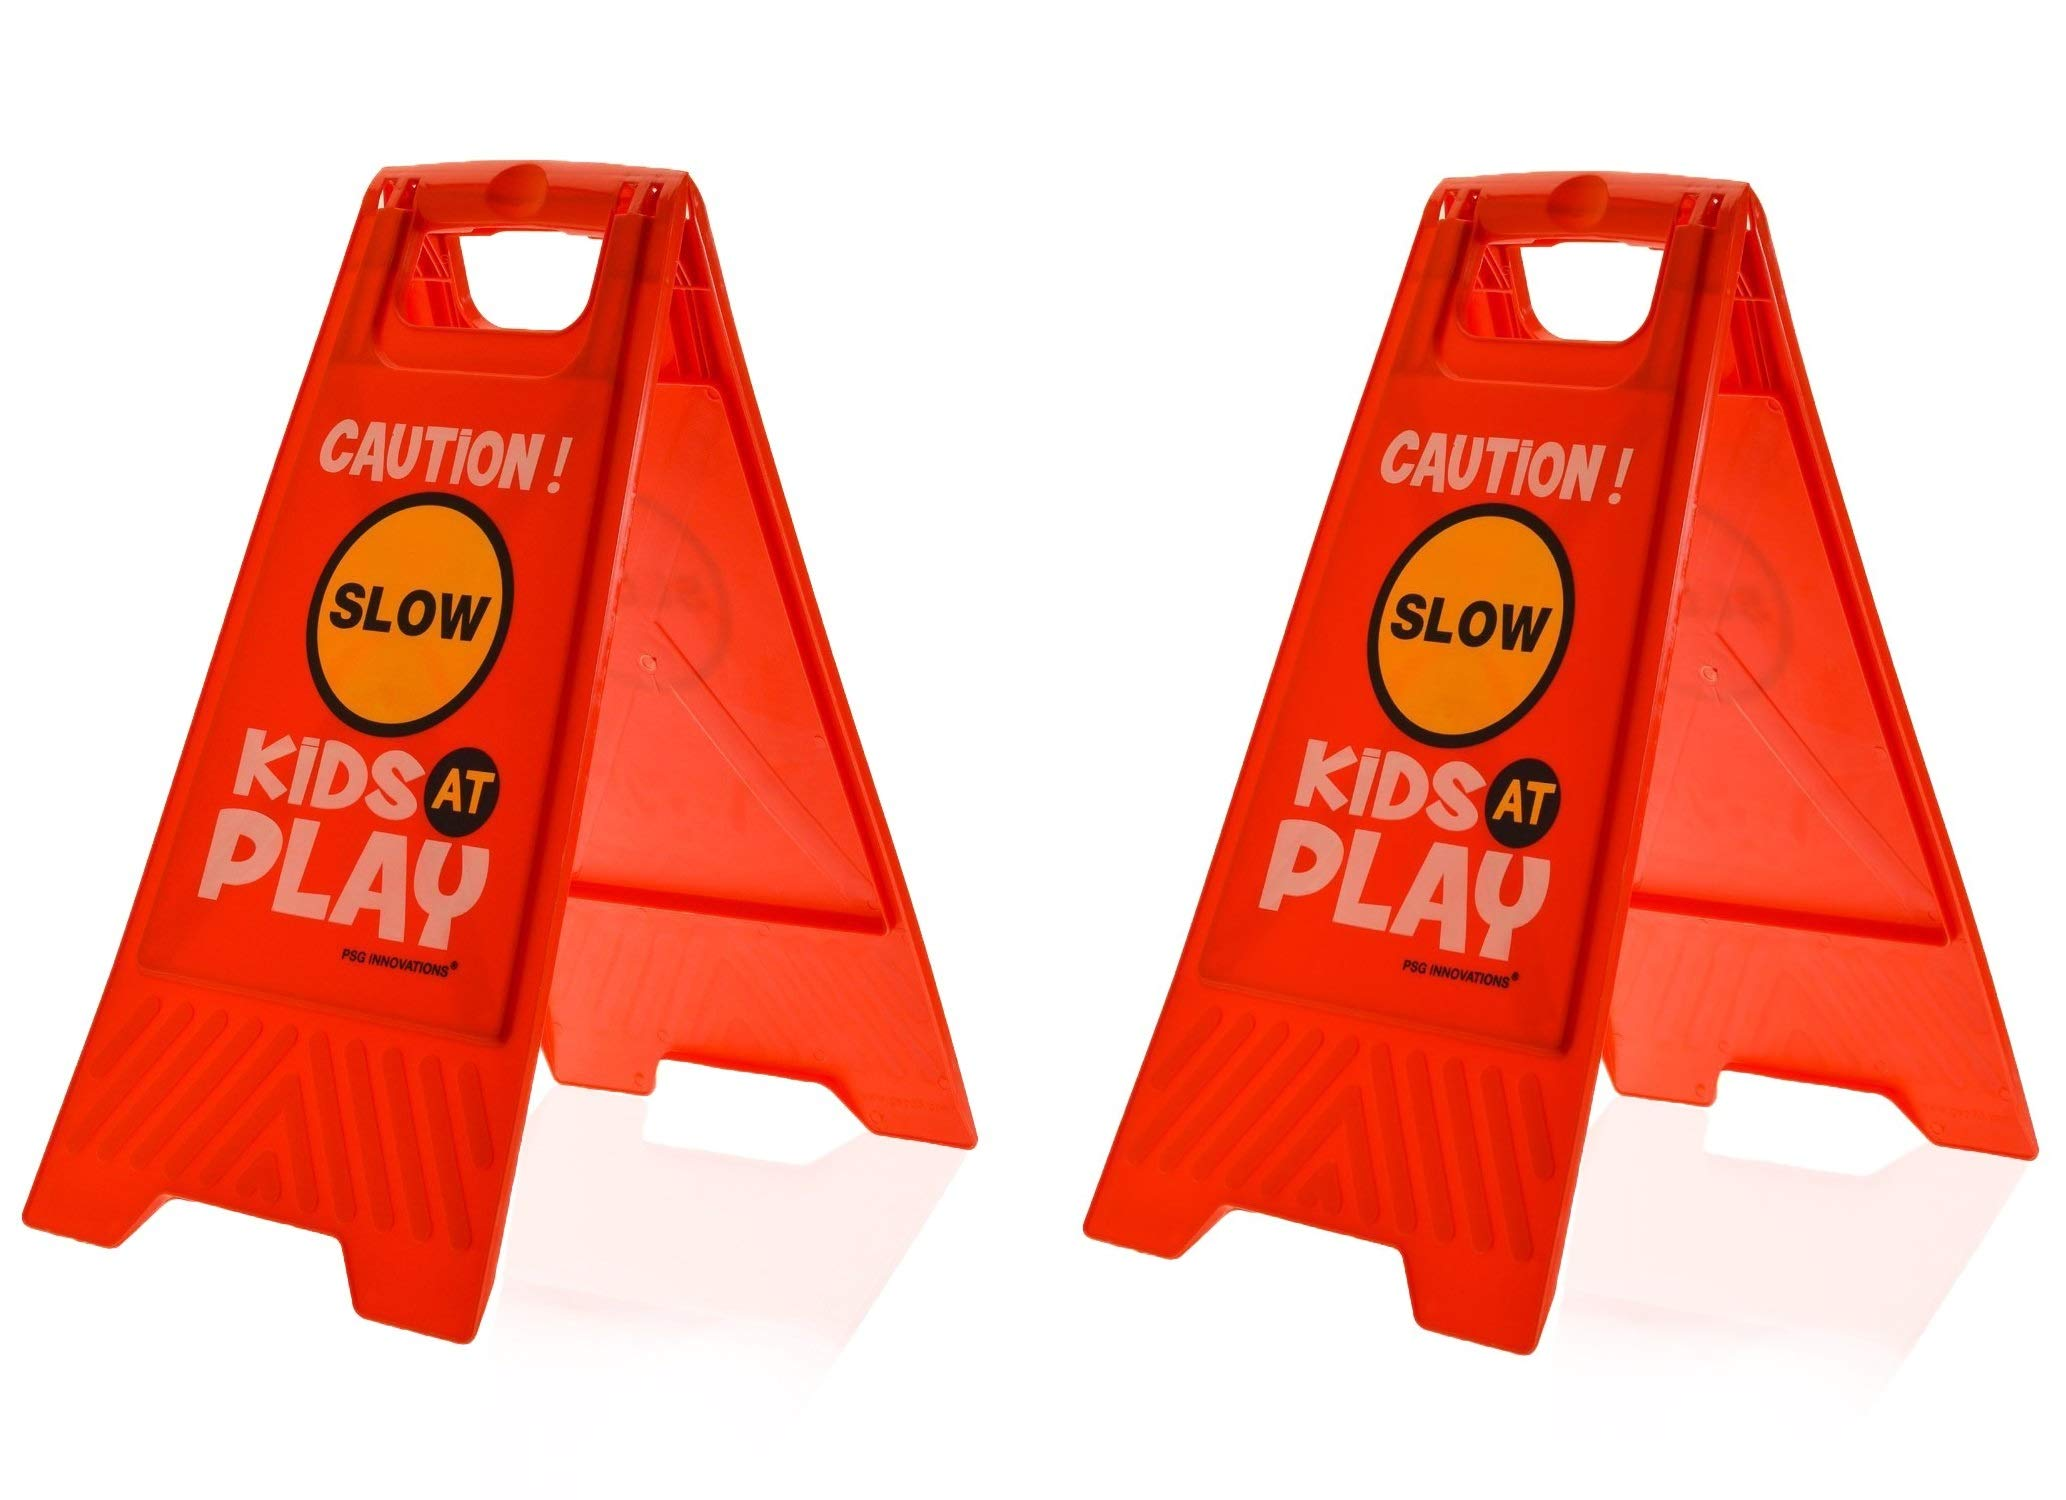 Essentially Yours 2 Pack Kids Playing Safety Floor Sign for Yards and Driveways (Double-Sided, Red) - Caution, Slow, Kids at Play by Essentially Yours